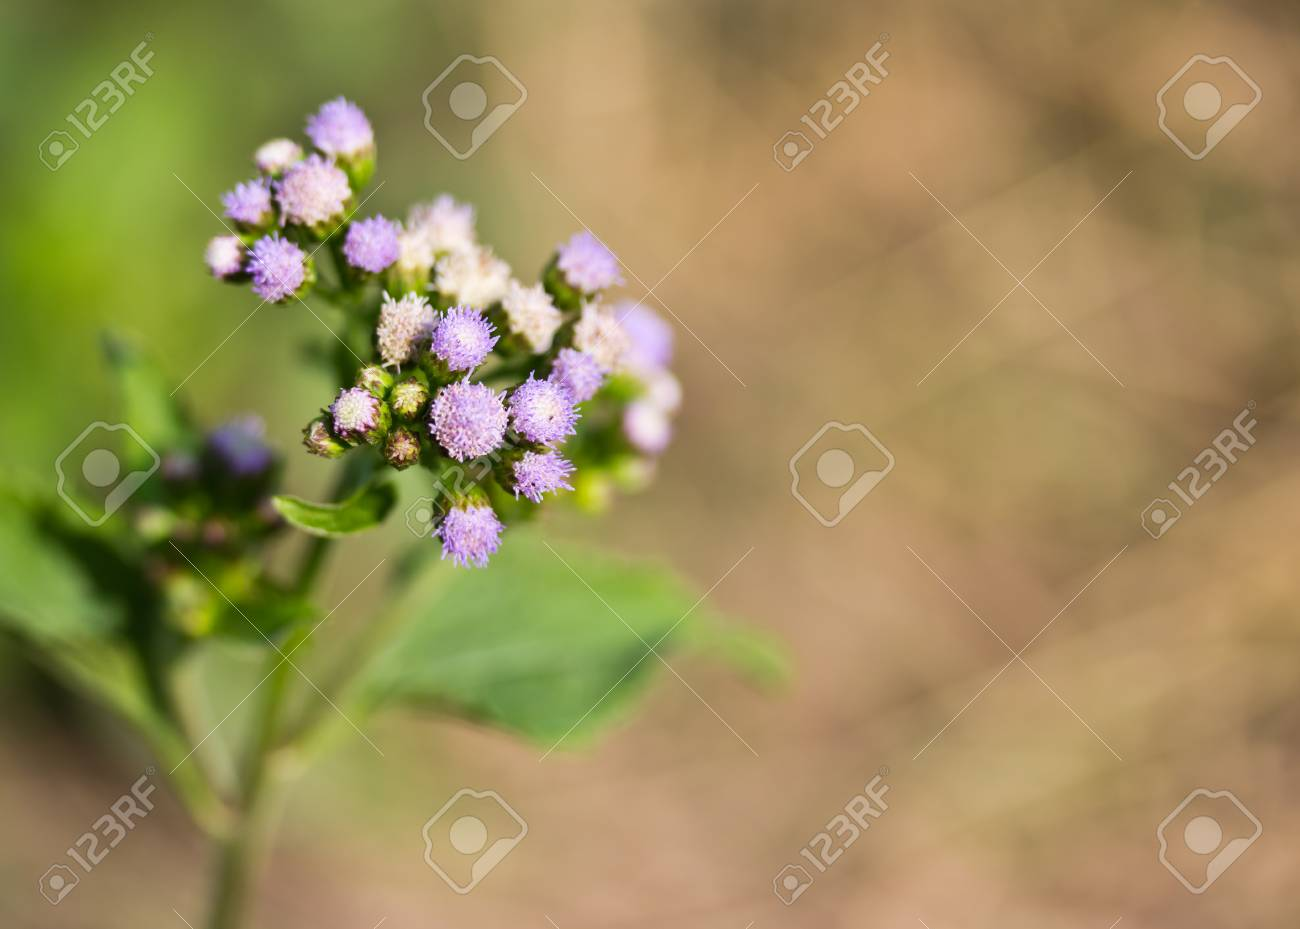 A single green stem with tiny little purple flowers stock photo a single green stem with tiny little purple flowers stock photo 25103938 mightylinksfo